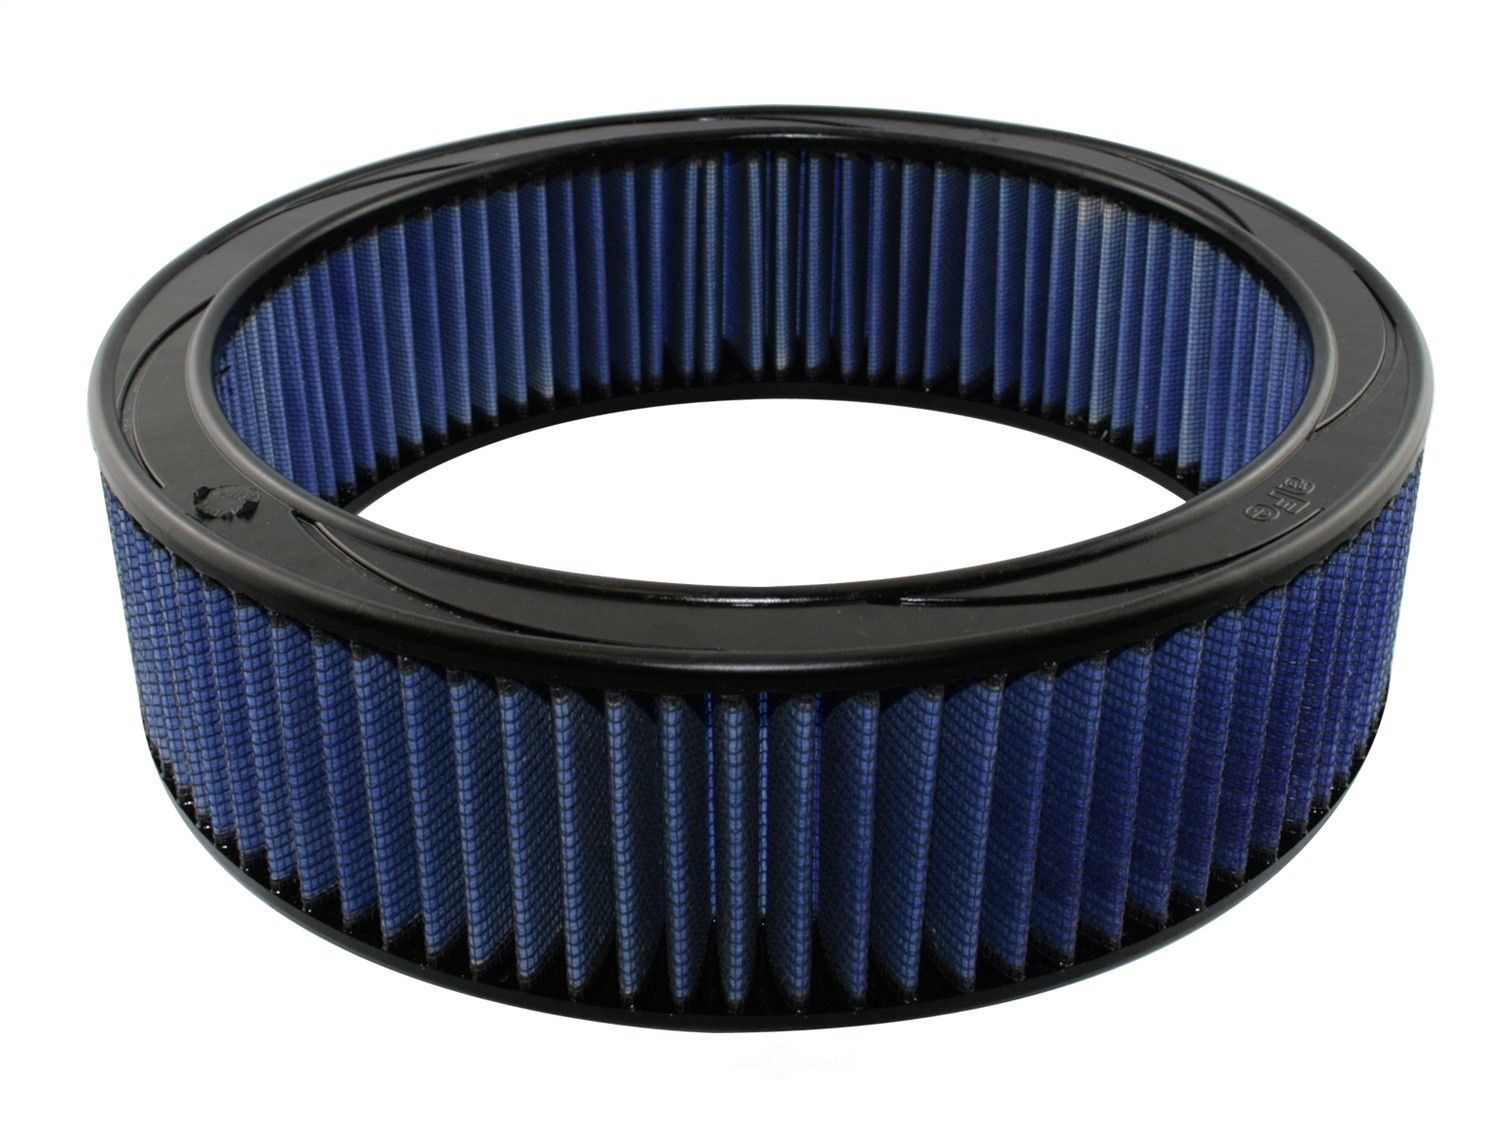 AFE FILTERS - MagnumFlow OE Replacement Pro 5R Air Filter - A5F 10-10003